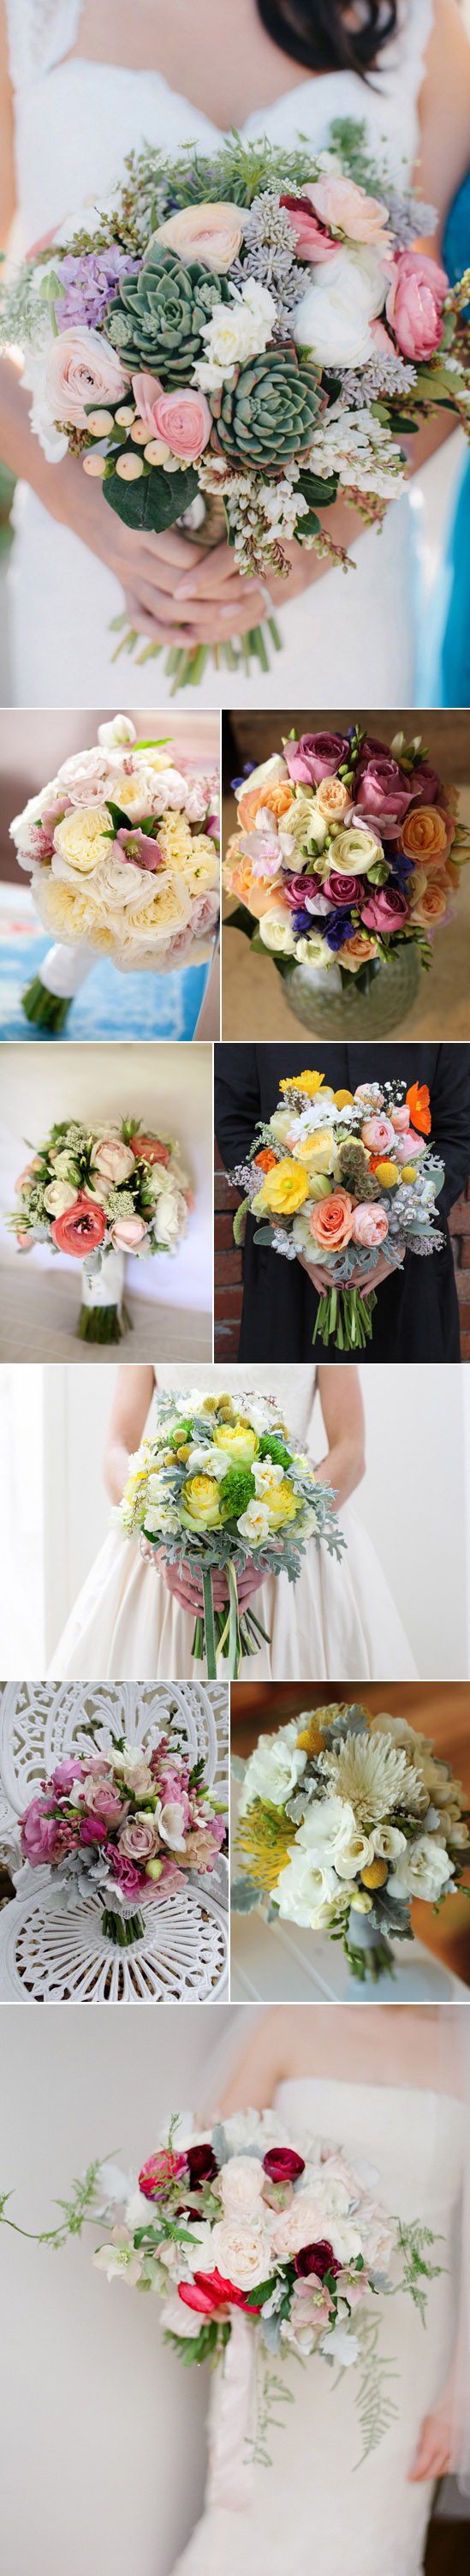 Spring bridal bouquets 1 Spring Wedding Bouquets